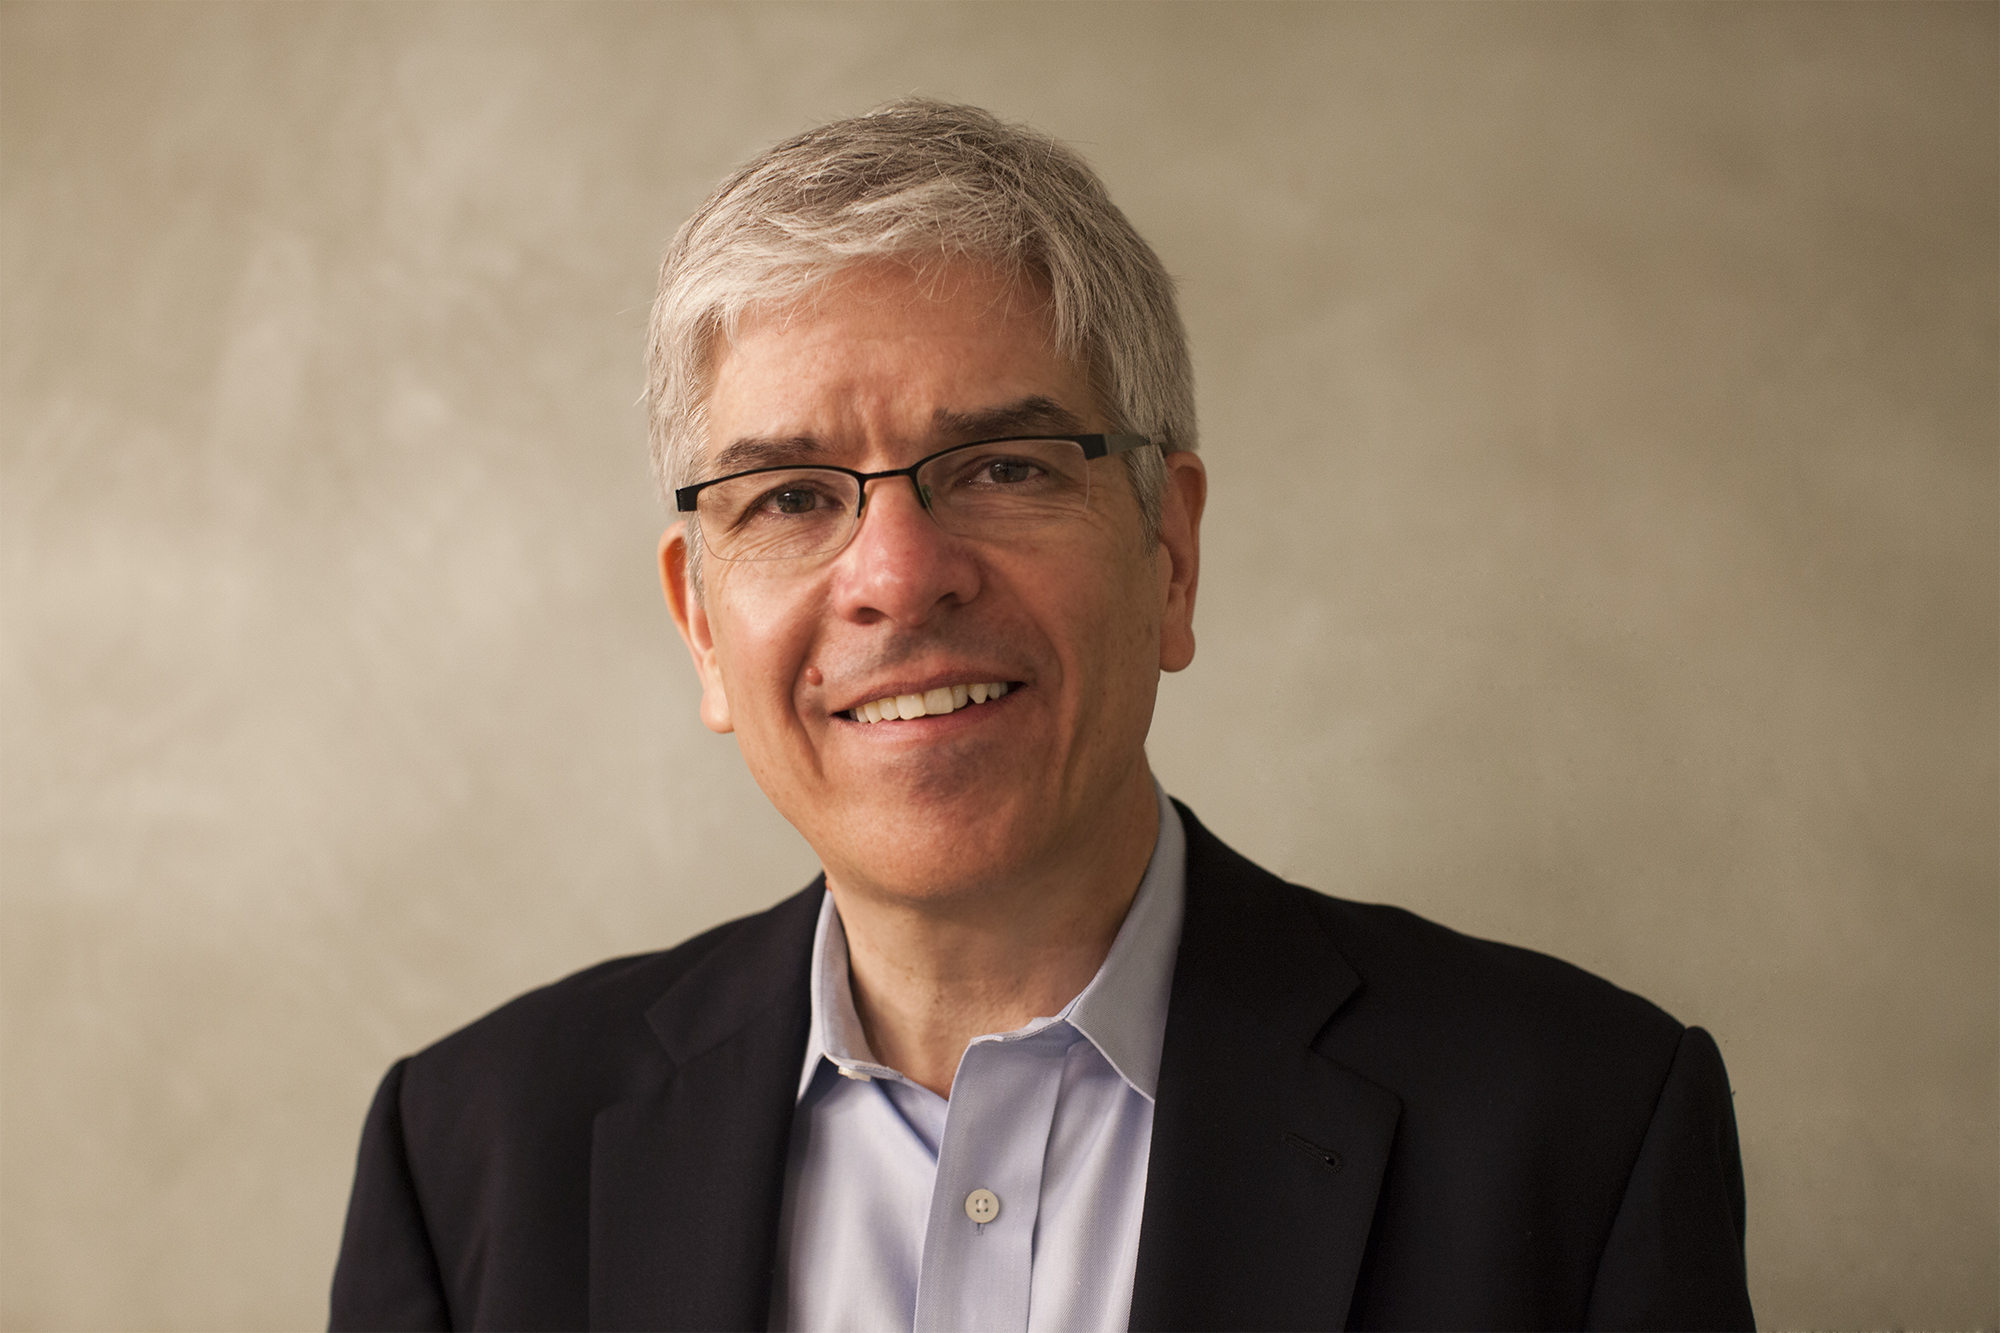 New World Bank chief economist Paul Romer